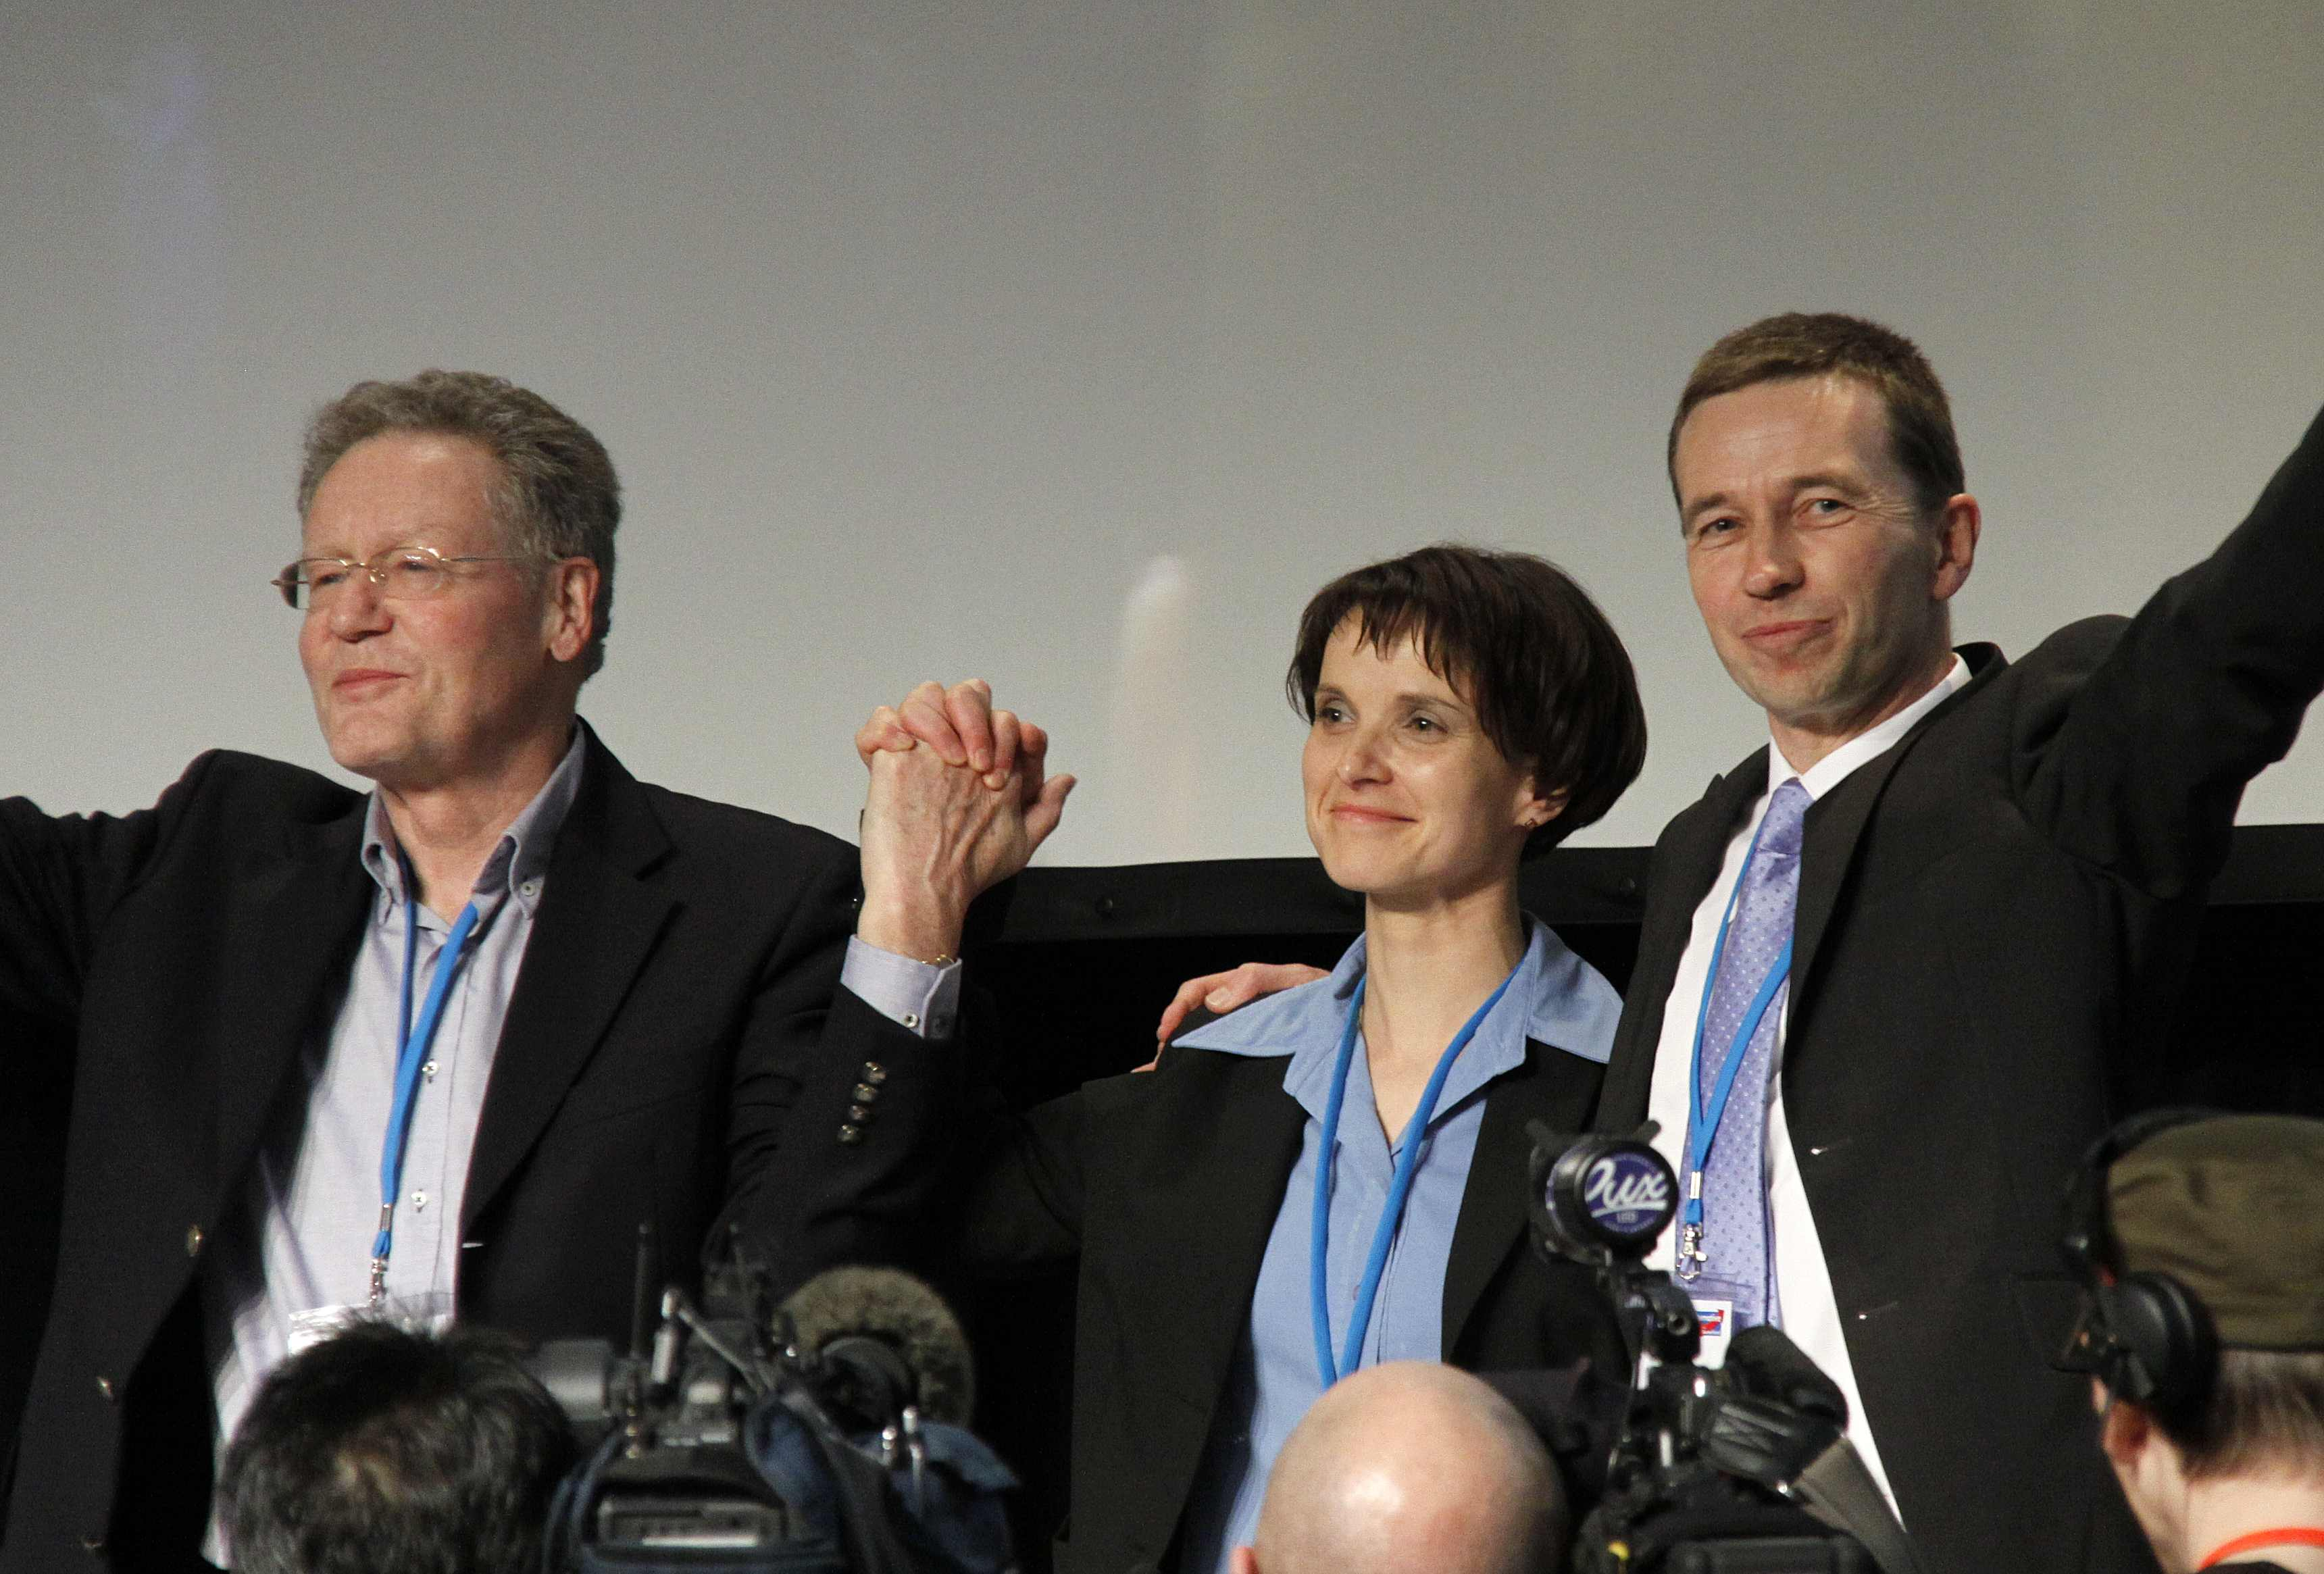 AfD founders Konrad Adam (left), Bernd Lucke with Frauke Petry during the first AfD convention on 14 April 2013 in Berlin. Source: Wikimedia